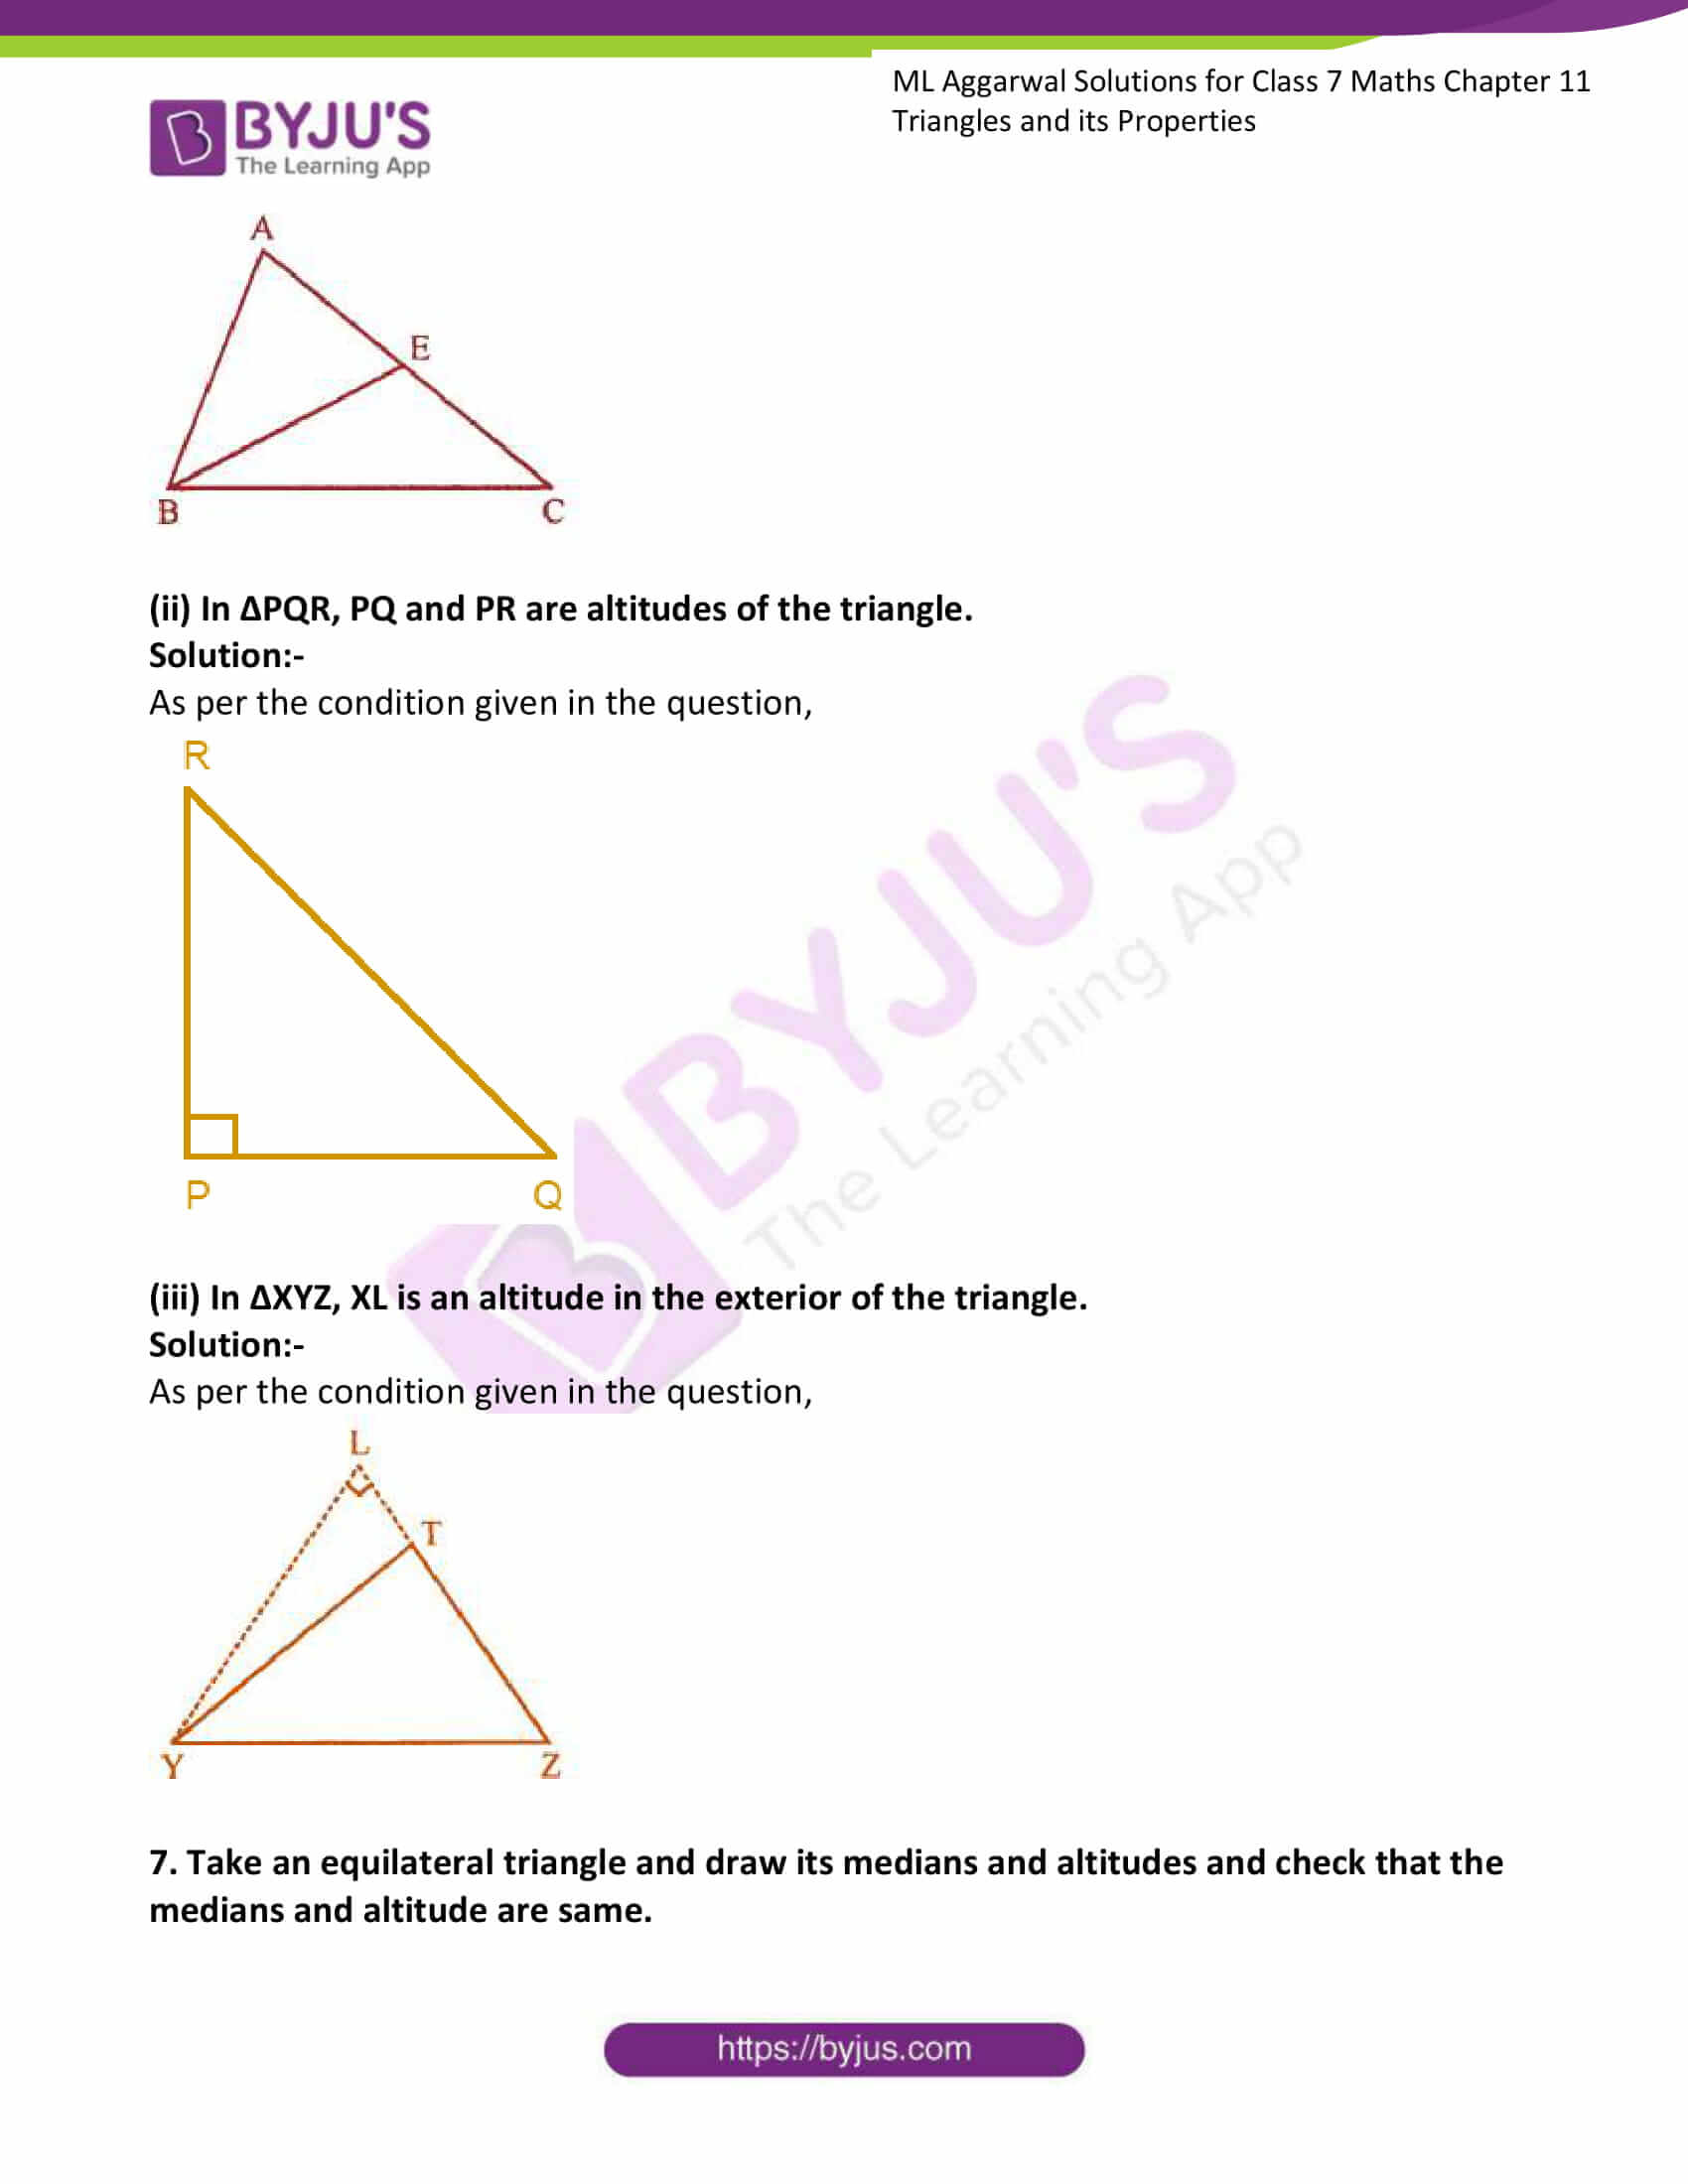 ml aggarwal solutions for class 7 maths chapter 11 4